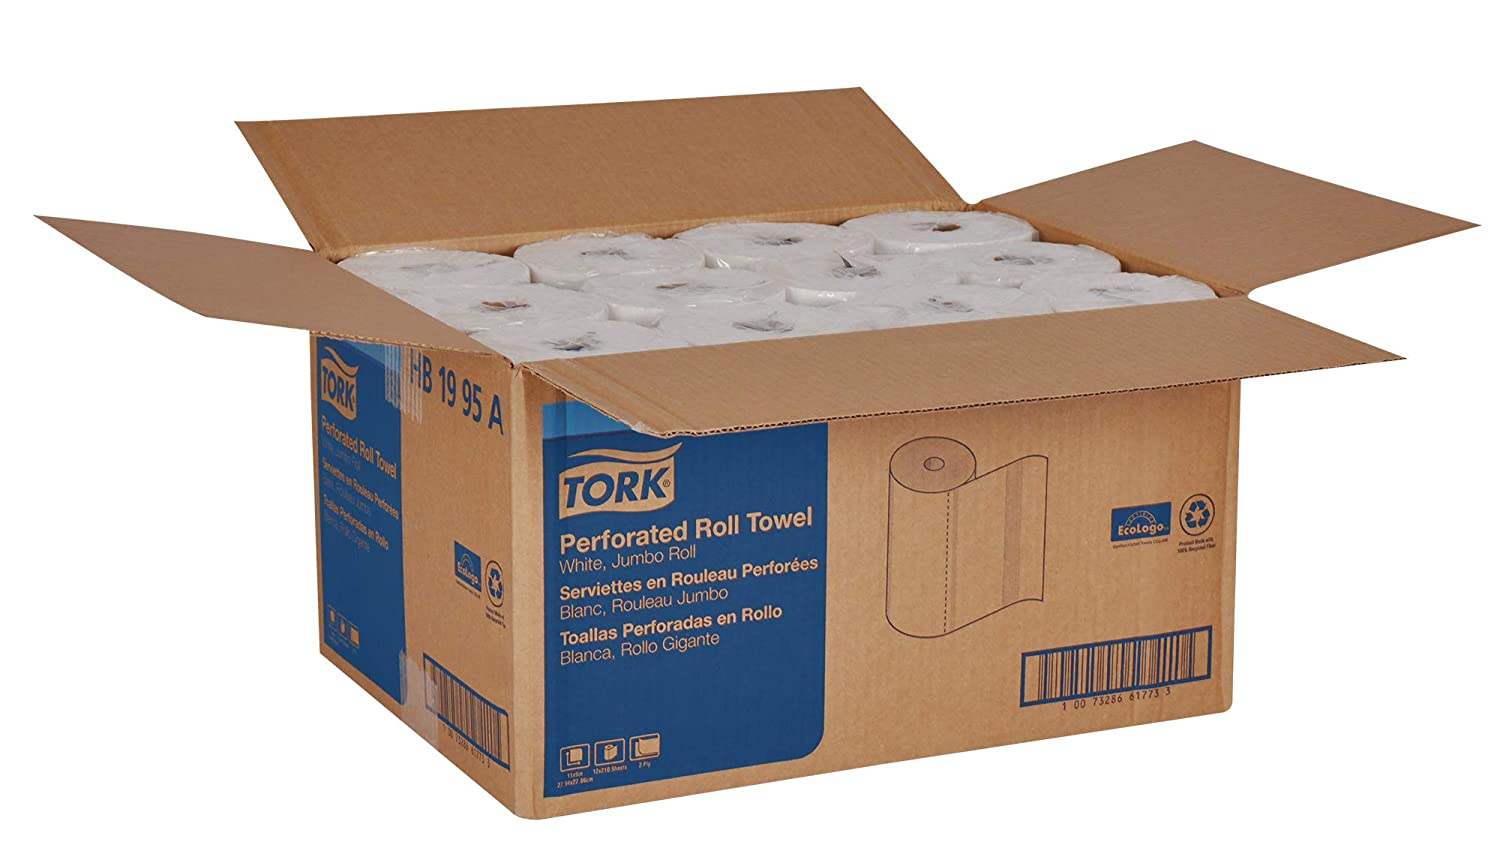 Amazon.com: Tork HB1995A Jumbo Roll Perforated Paper Roll Towel, 2-Ply, 11